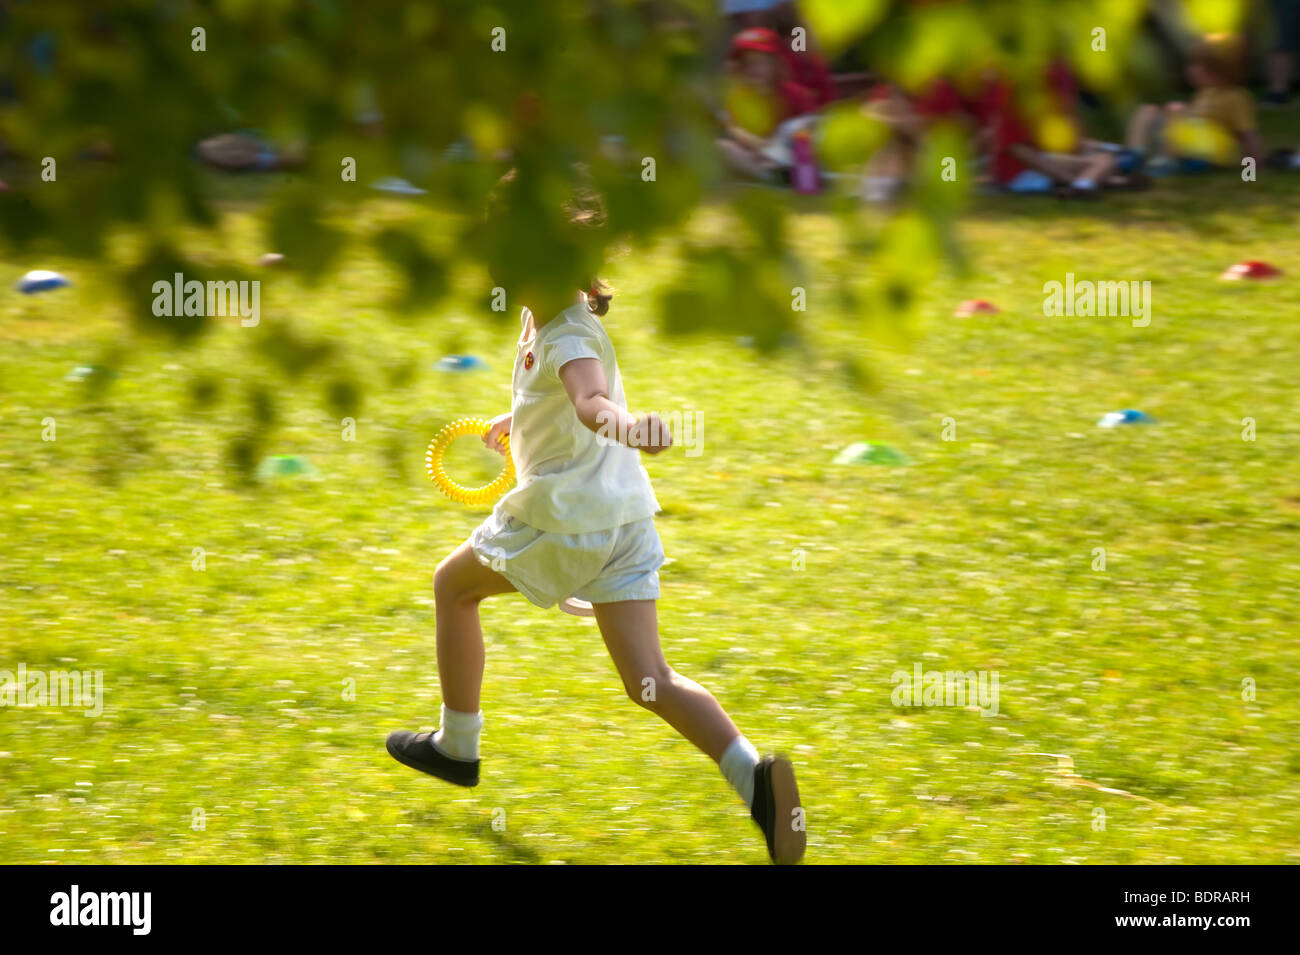 Child running in relay race at primary school sports day - Stock Image